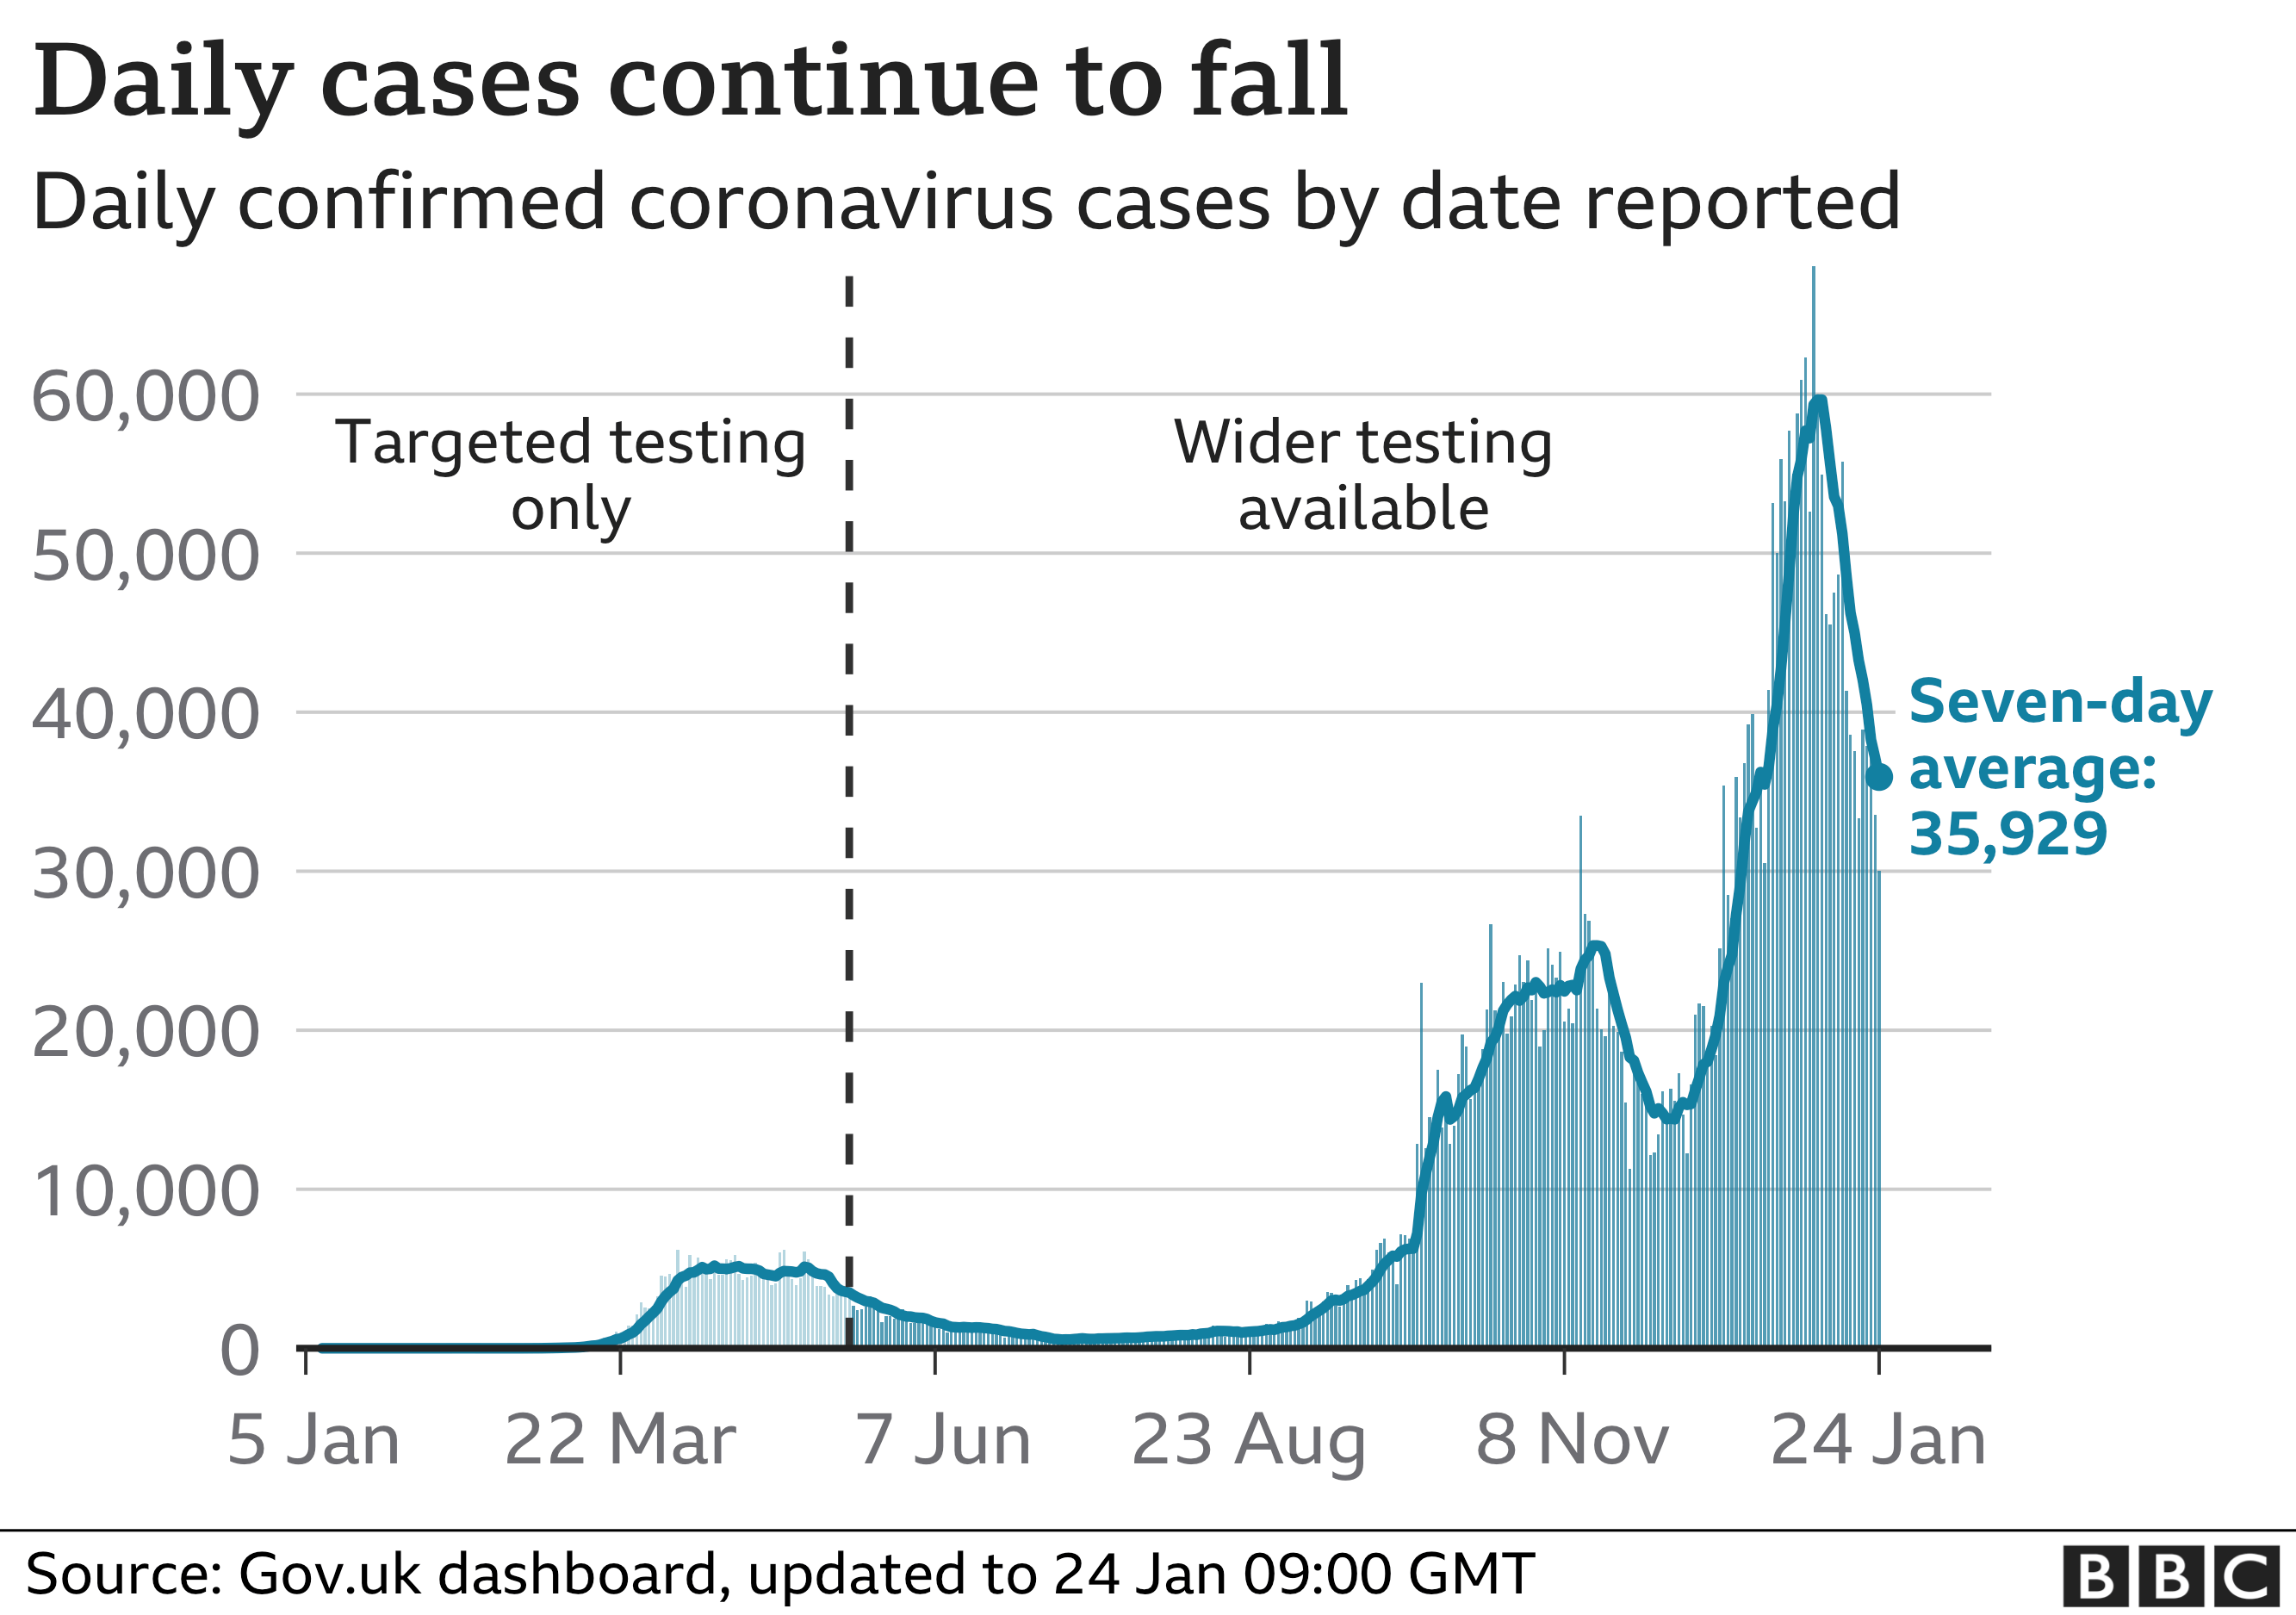 Chart showing daily coronavirus cases are continuing to fall